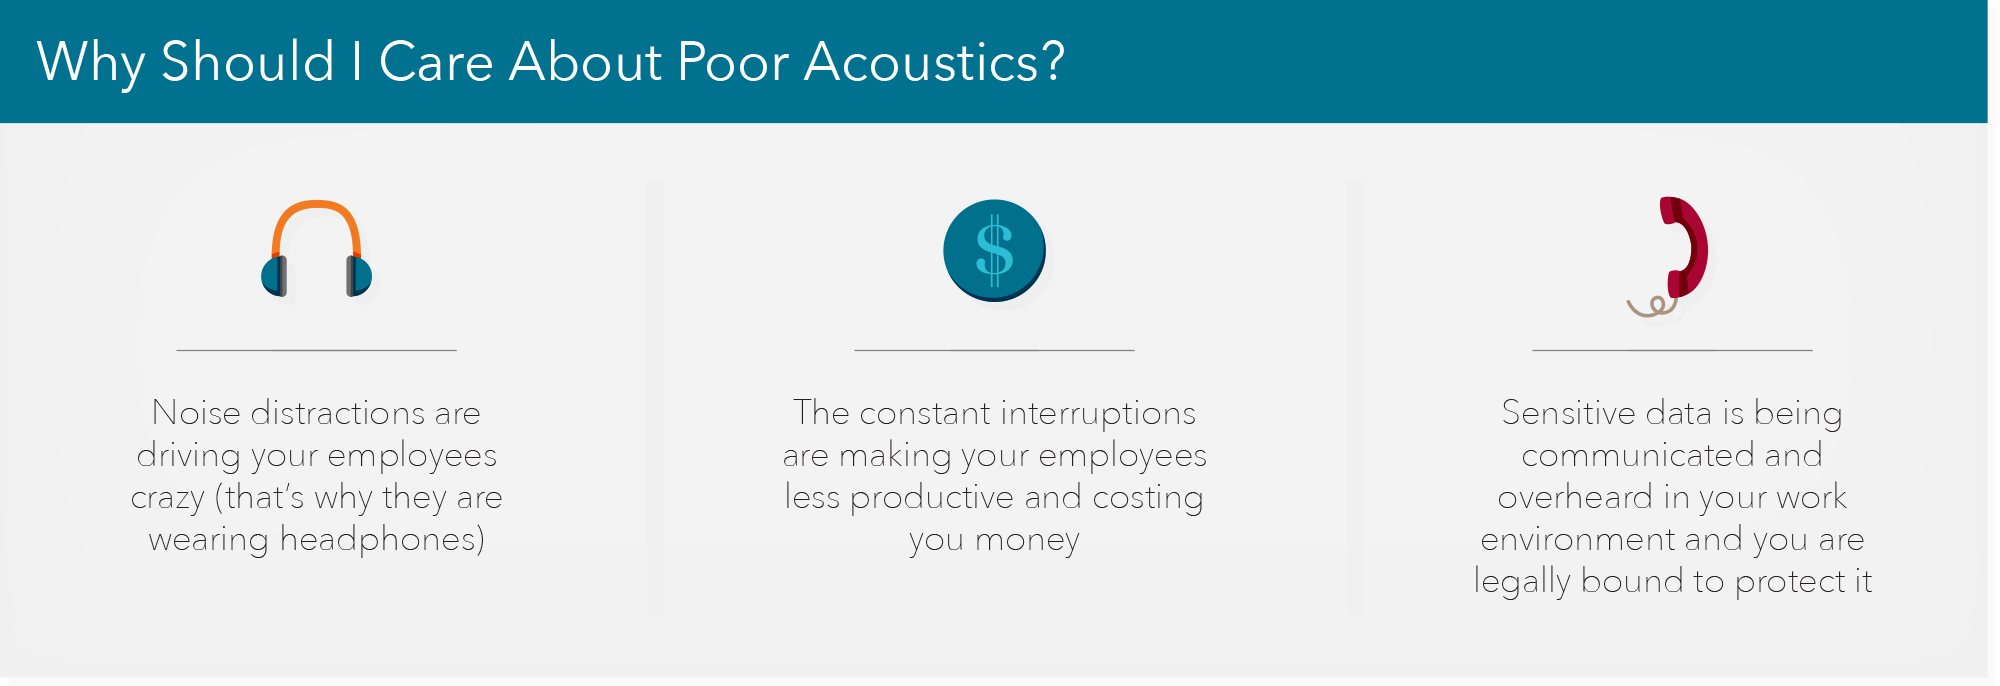 Why-should-i-care-about-poor-acoustics